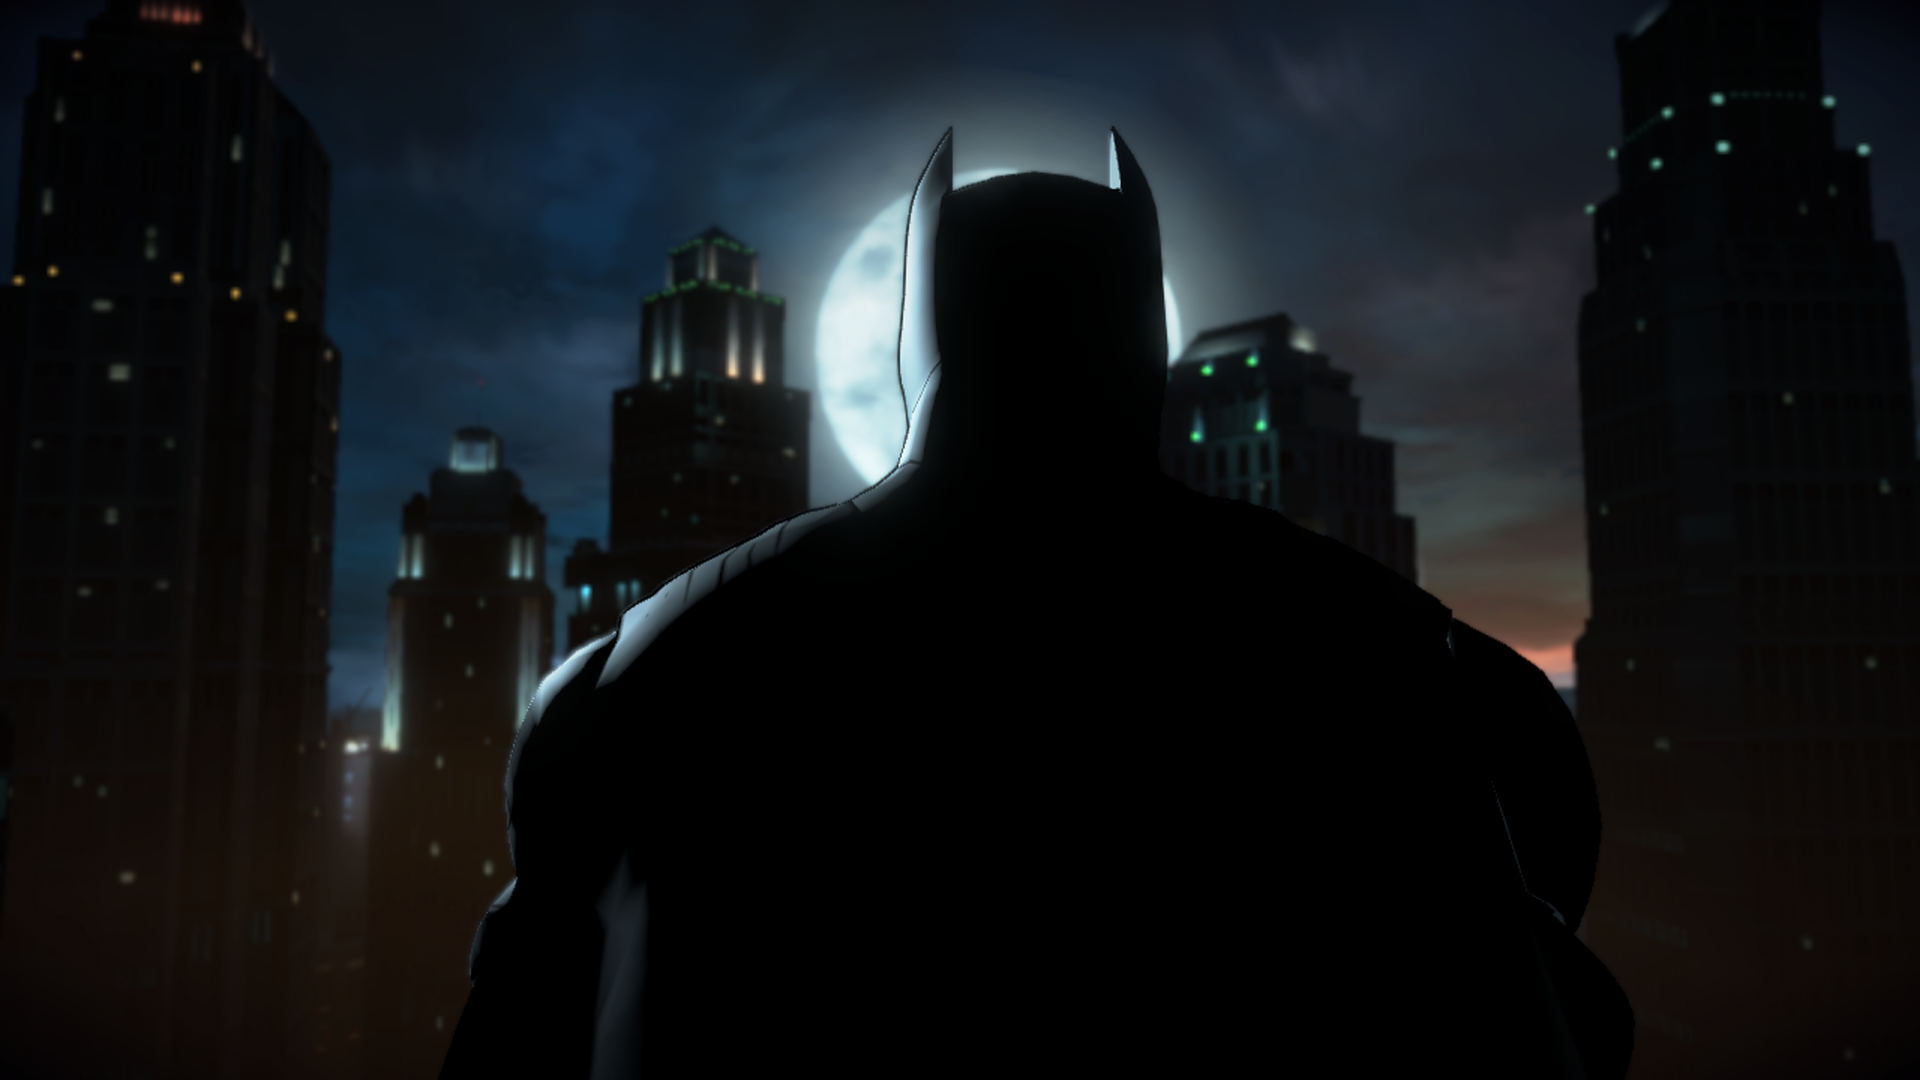 BATMAN: THE ENEMY WITHIN - Additional Writing, Episodes 1 & 3Release Date: Fall 2017 - Spring 2018